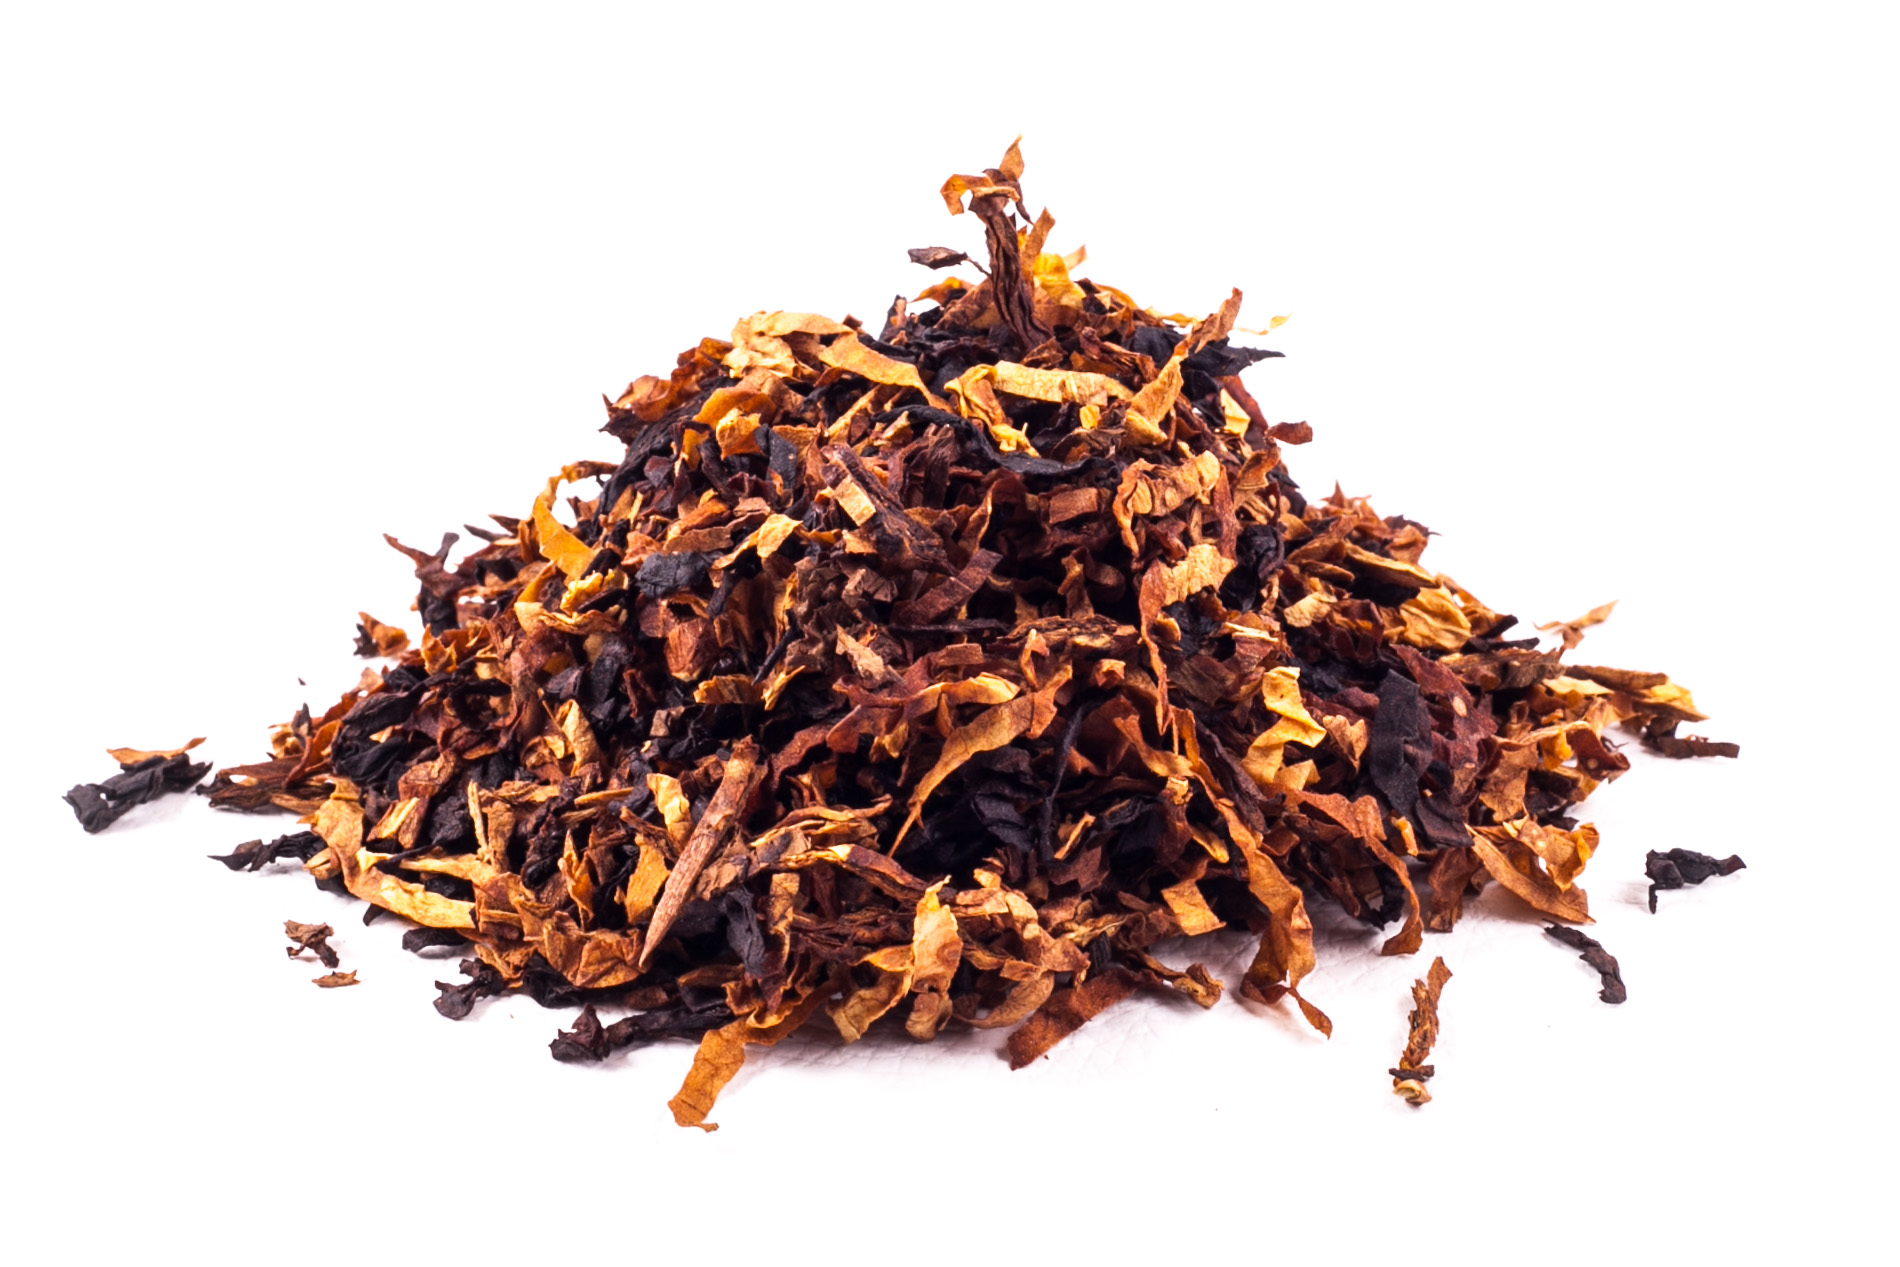 Tobacco Wallpaper by Todd Allen on FL Food and Drink HDQ 45438 KB 1900x1267